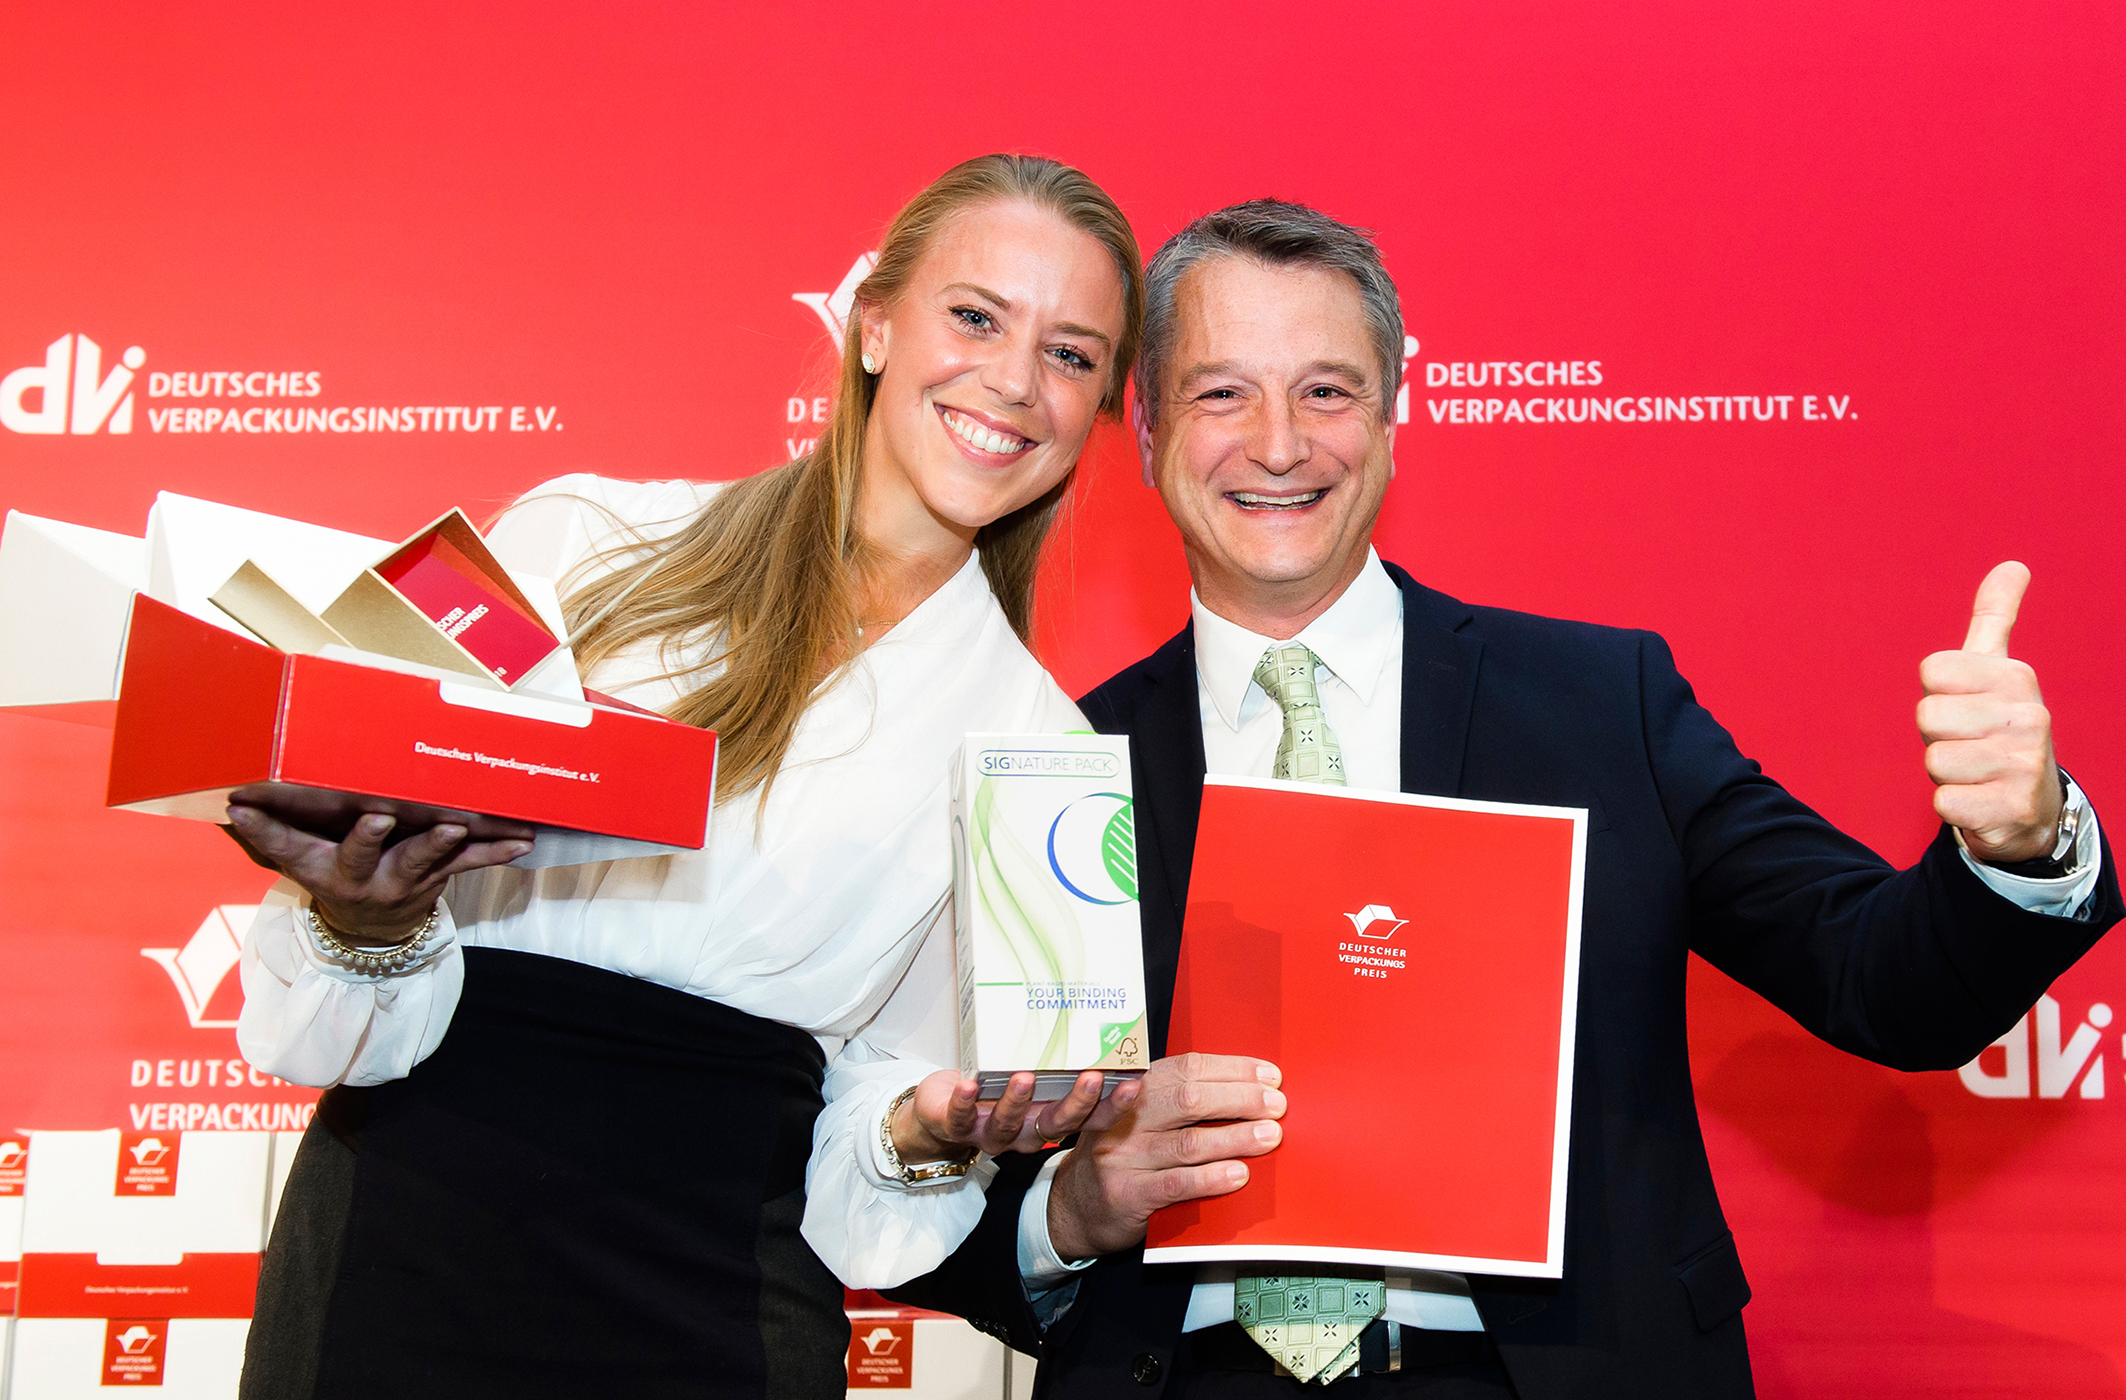 Nora Wigand, Marketing Account Manager D-A-CH, and Udo Felten, Manager Product Related Global Environmental Sustainability & Affairs at SIG, have received the German Packaging Award on behalf of SIG at the award ceremony in Nuremberg. Picture: Uwe Niklas